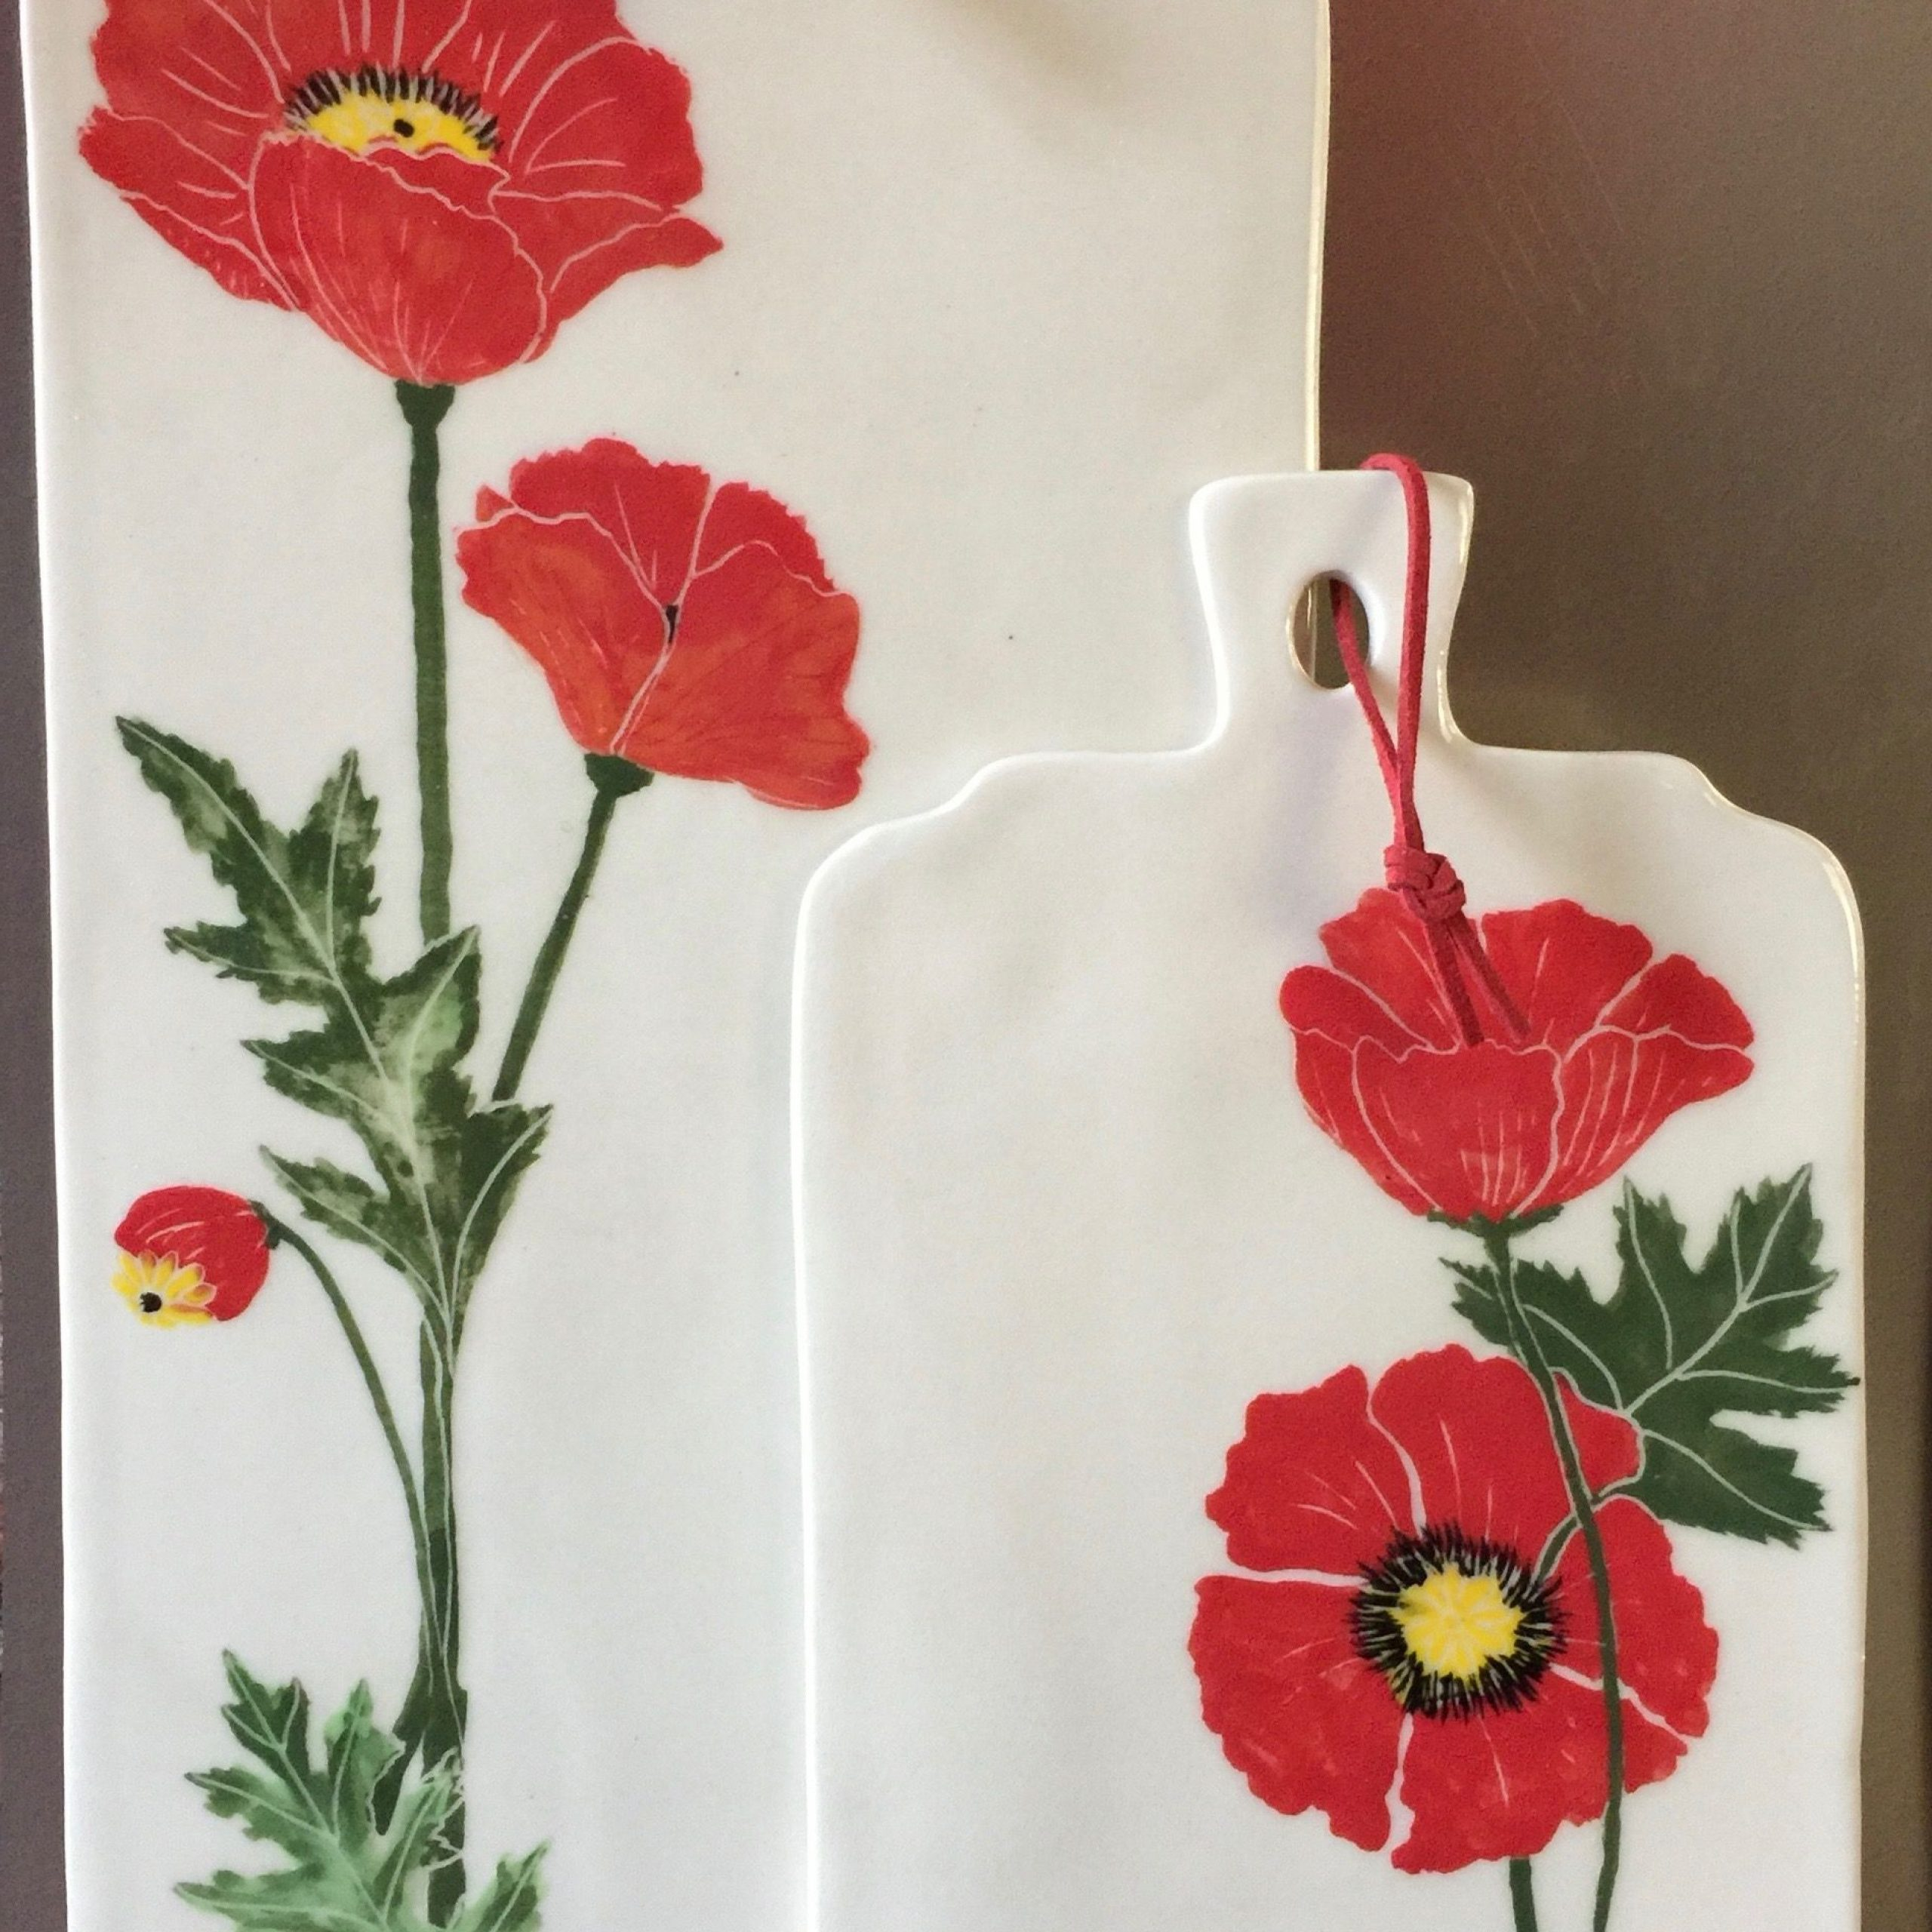 Pottery Designs For Wilde Poppies Ceramic Garden Stools (View 30 of 30)